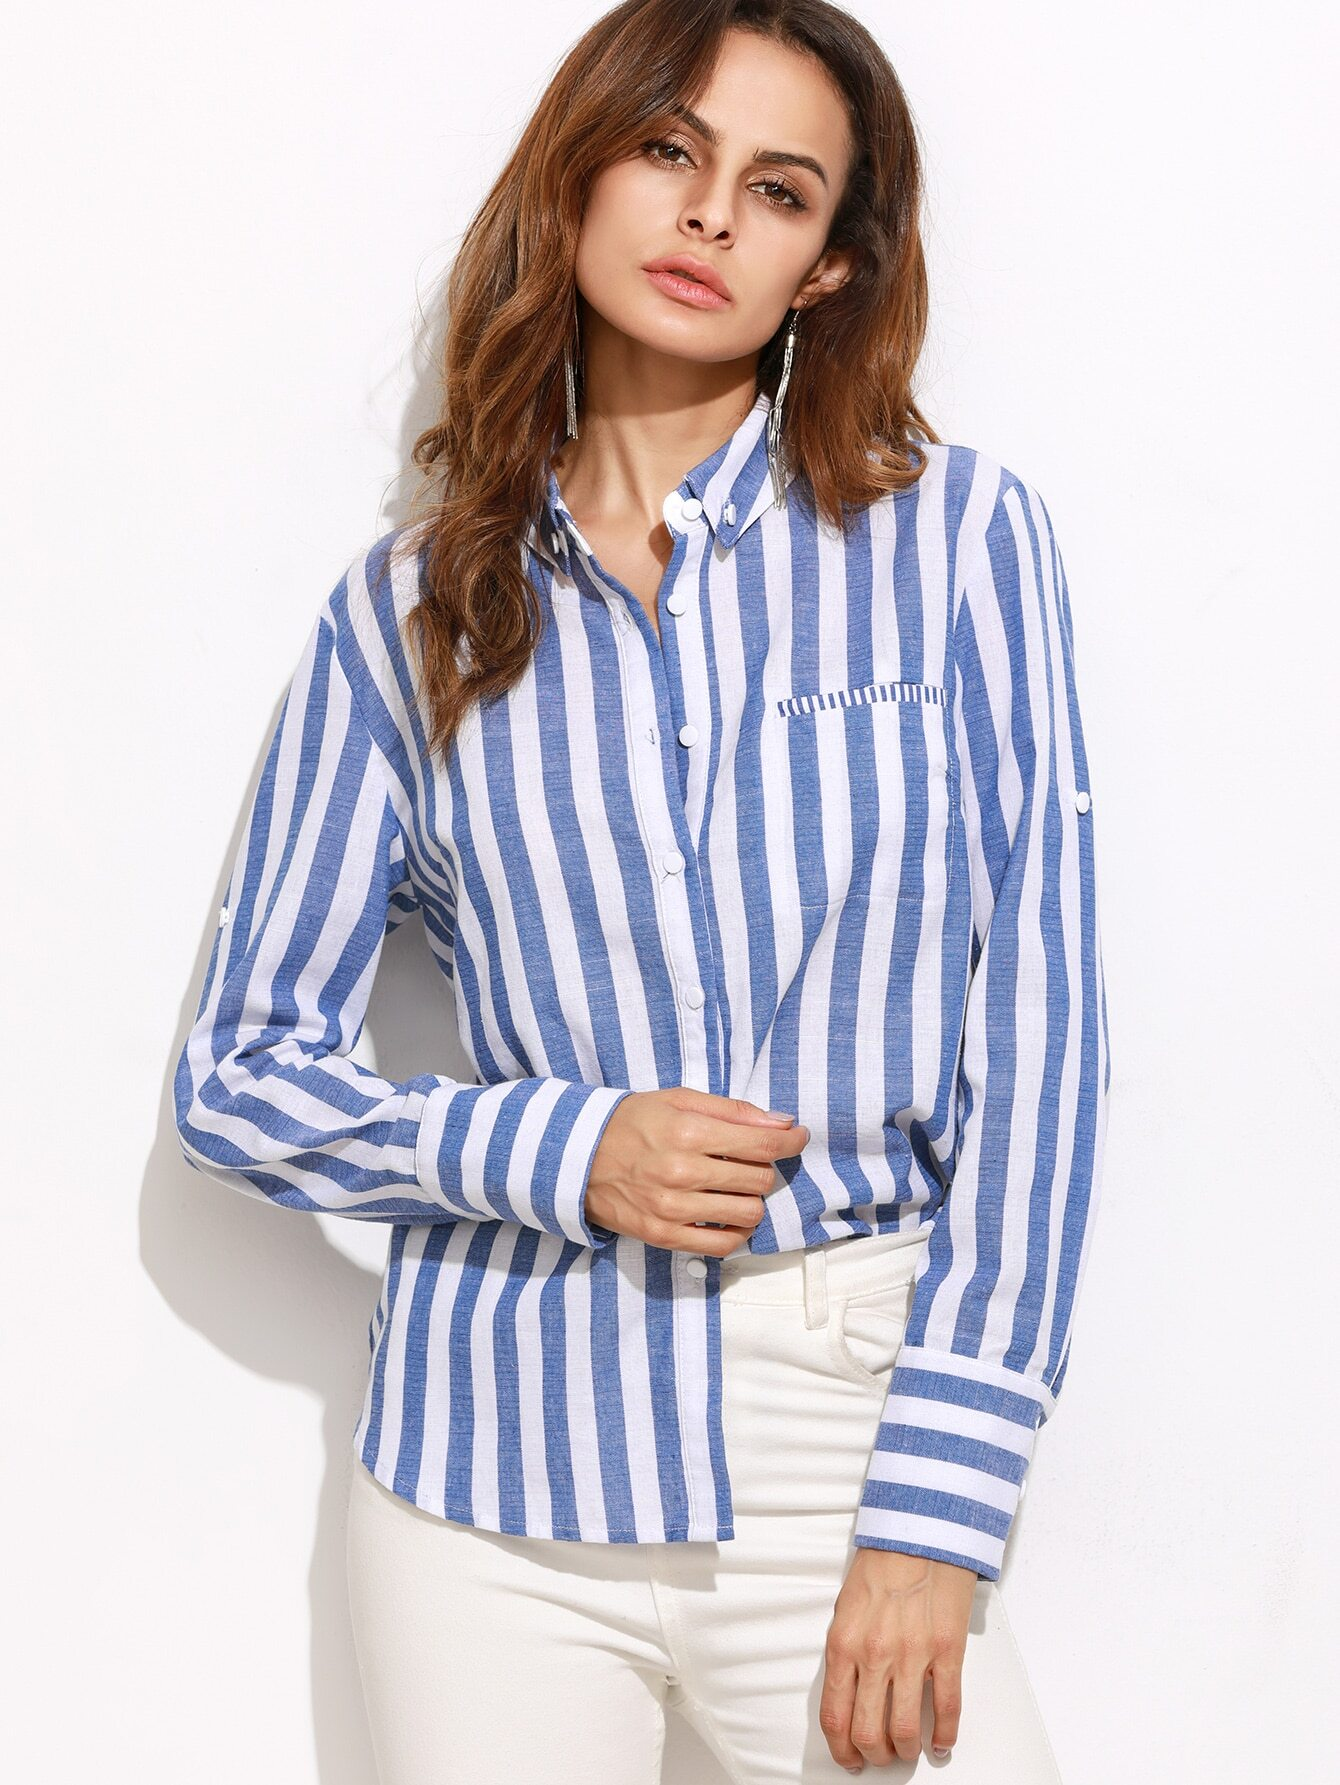 b00ea24656 Blue Vertical Striped Roll Sleeve Blouse EmmaCloth-Women Fast ...